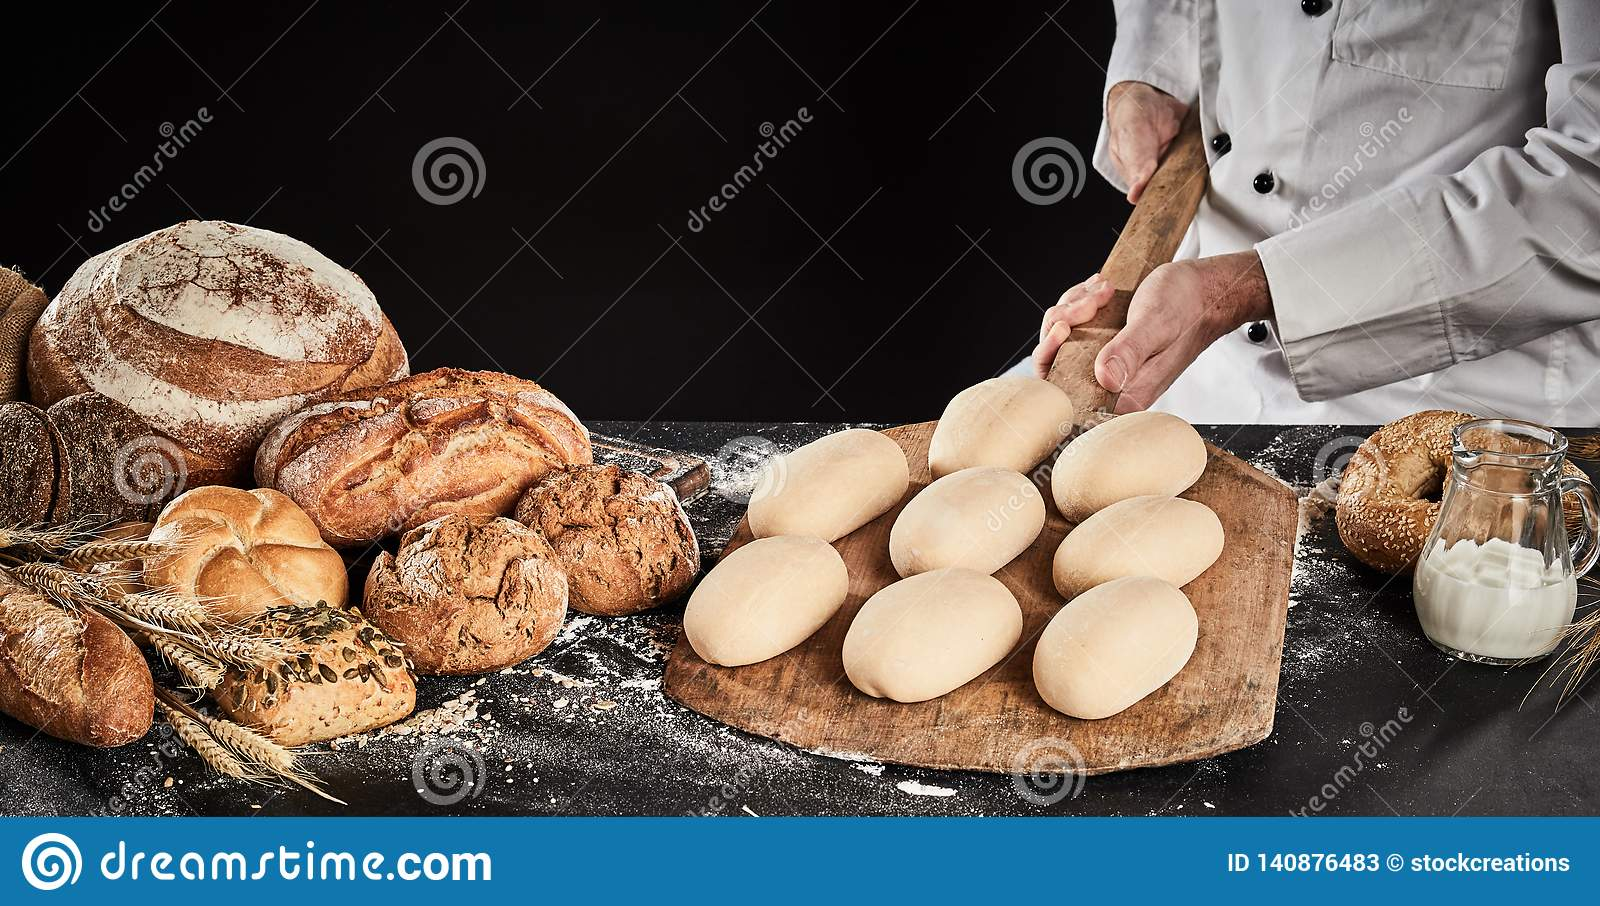 Raw dough for loaves of bread on a wooden paddle